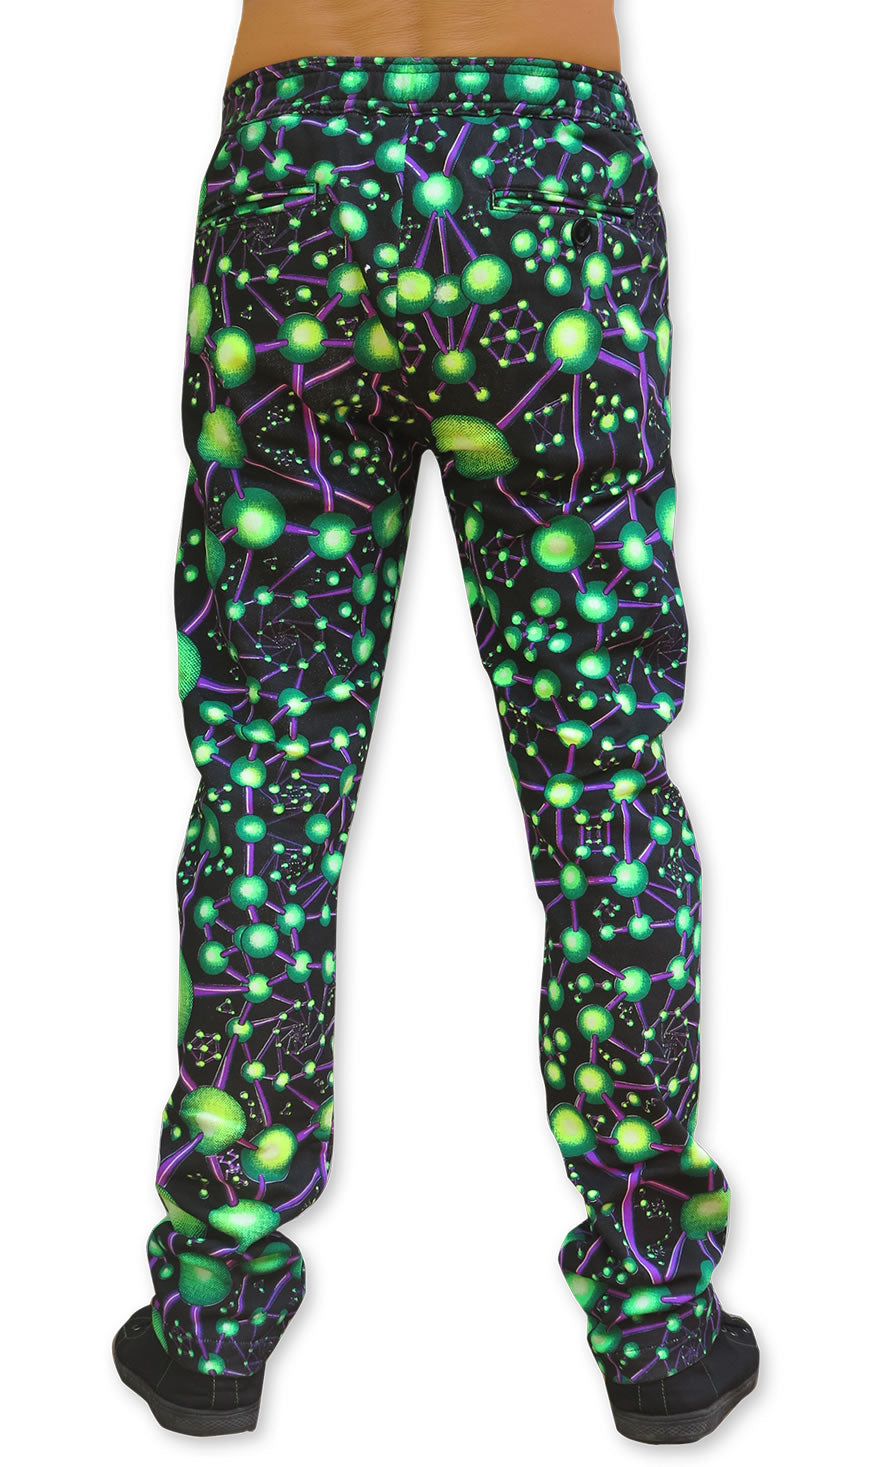 Chillout Pants : Atomic Alien